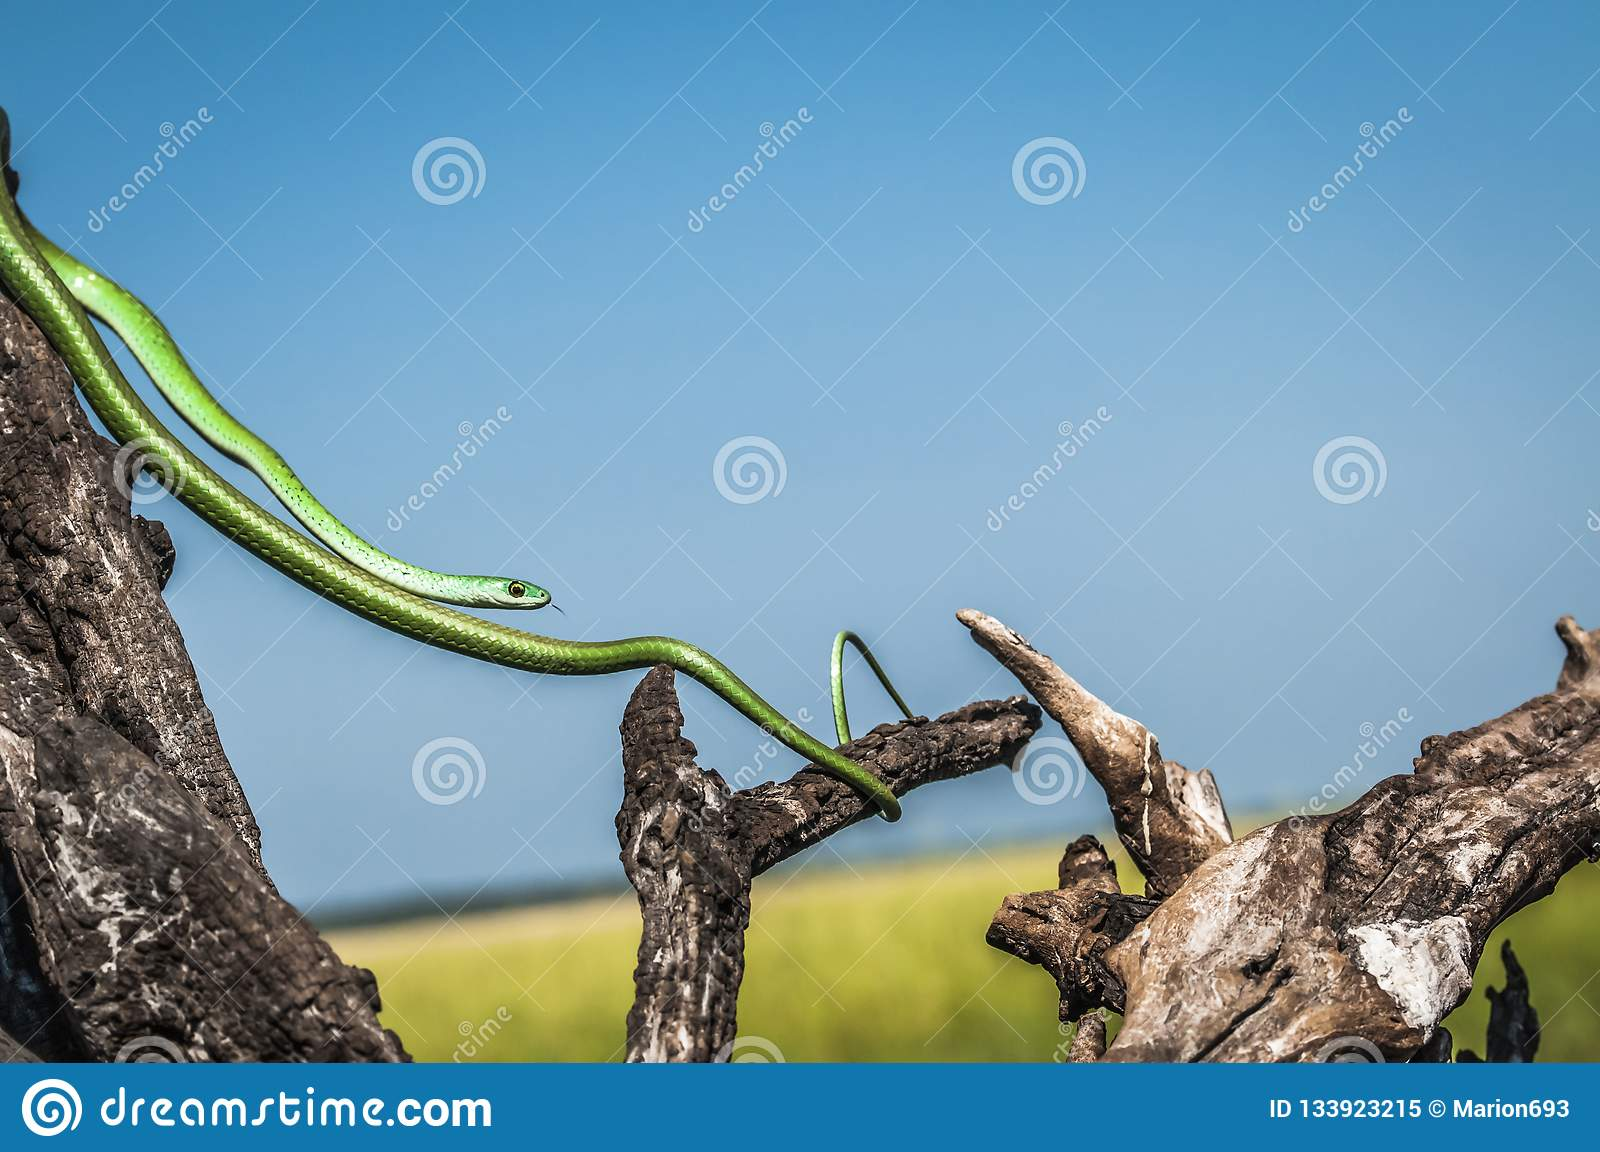 Slim green snake, stretched between dead tree branches